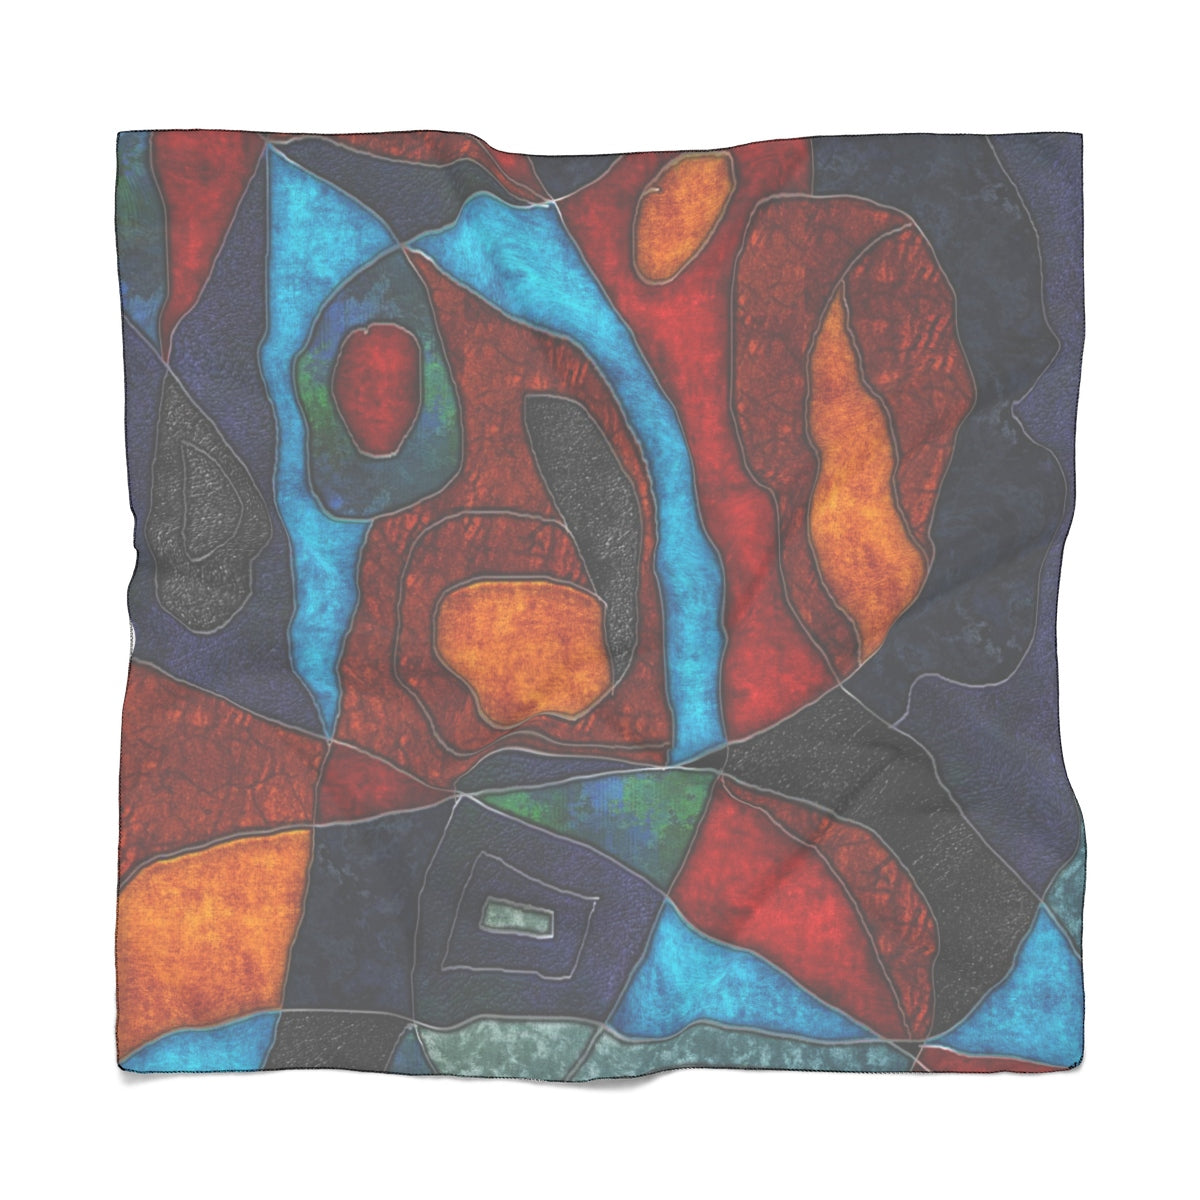 Abstract With Heart Poly Scarf - expressive-flower-art-goods.myshopify.com